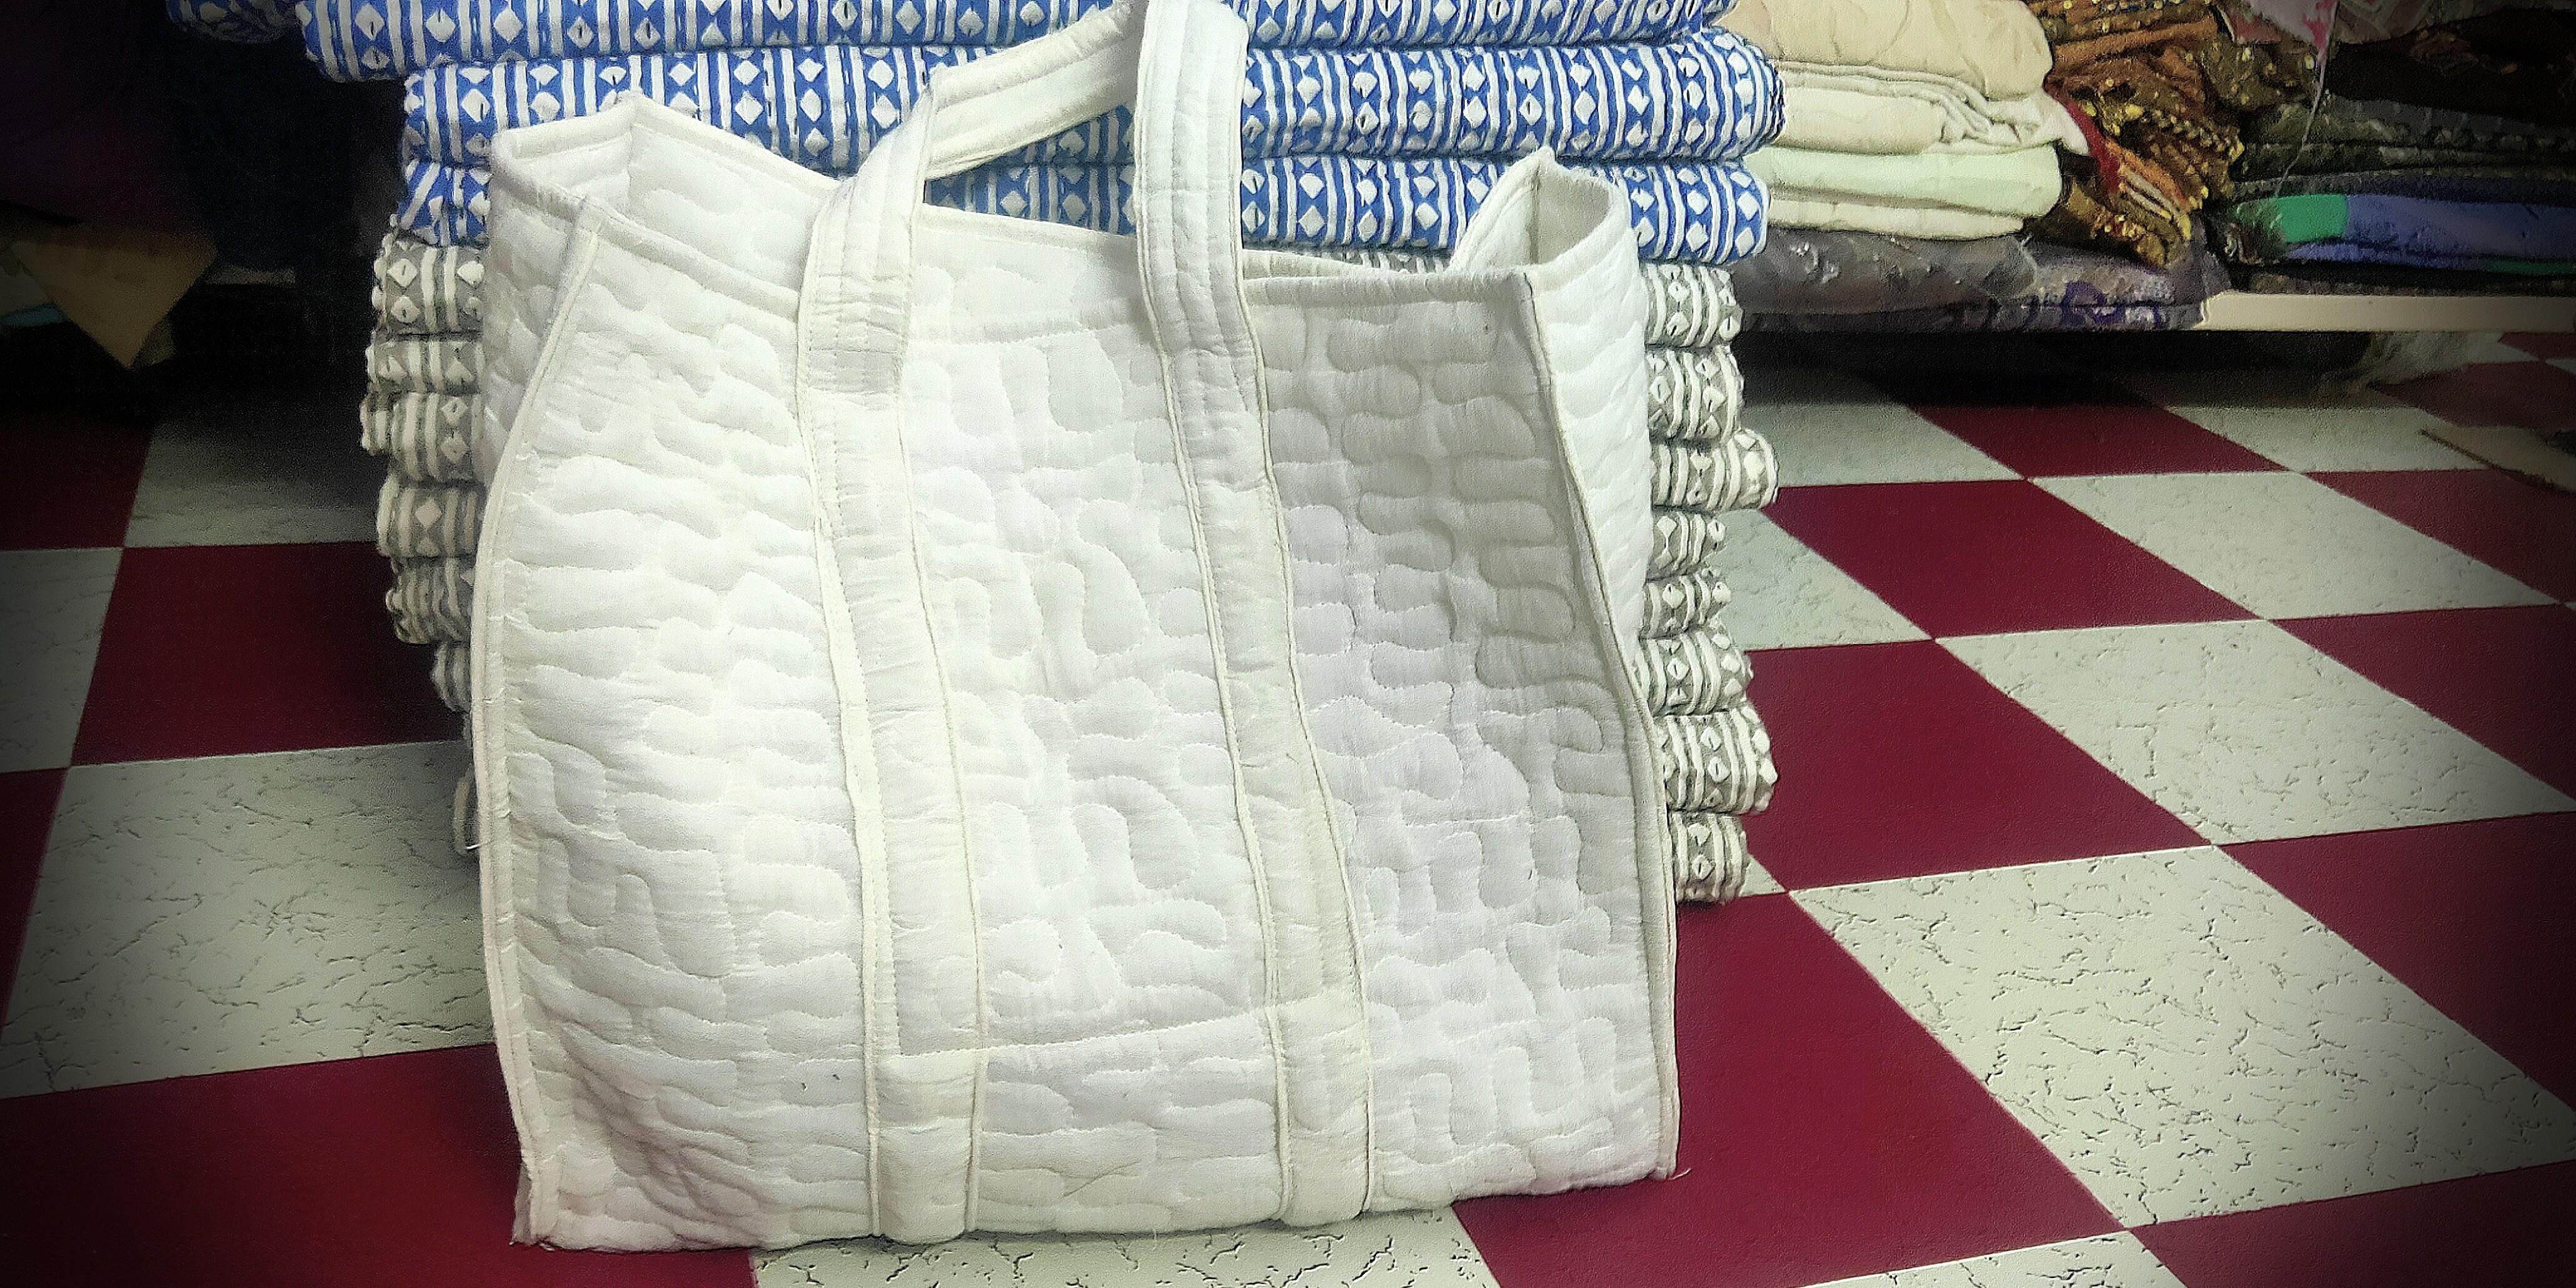 MCM Tote Bag , Block printed bags with leather straps,  cotton printed bags,  cotton handbags,  Tote bags